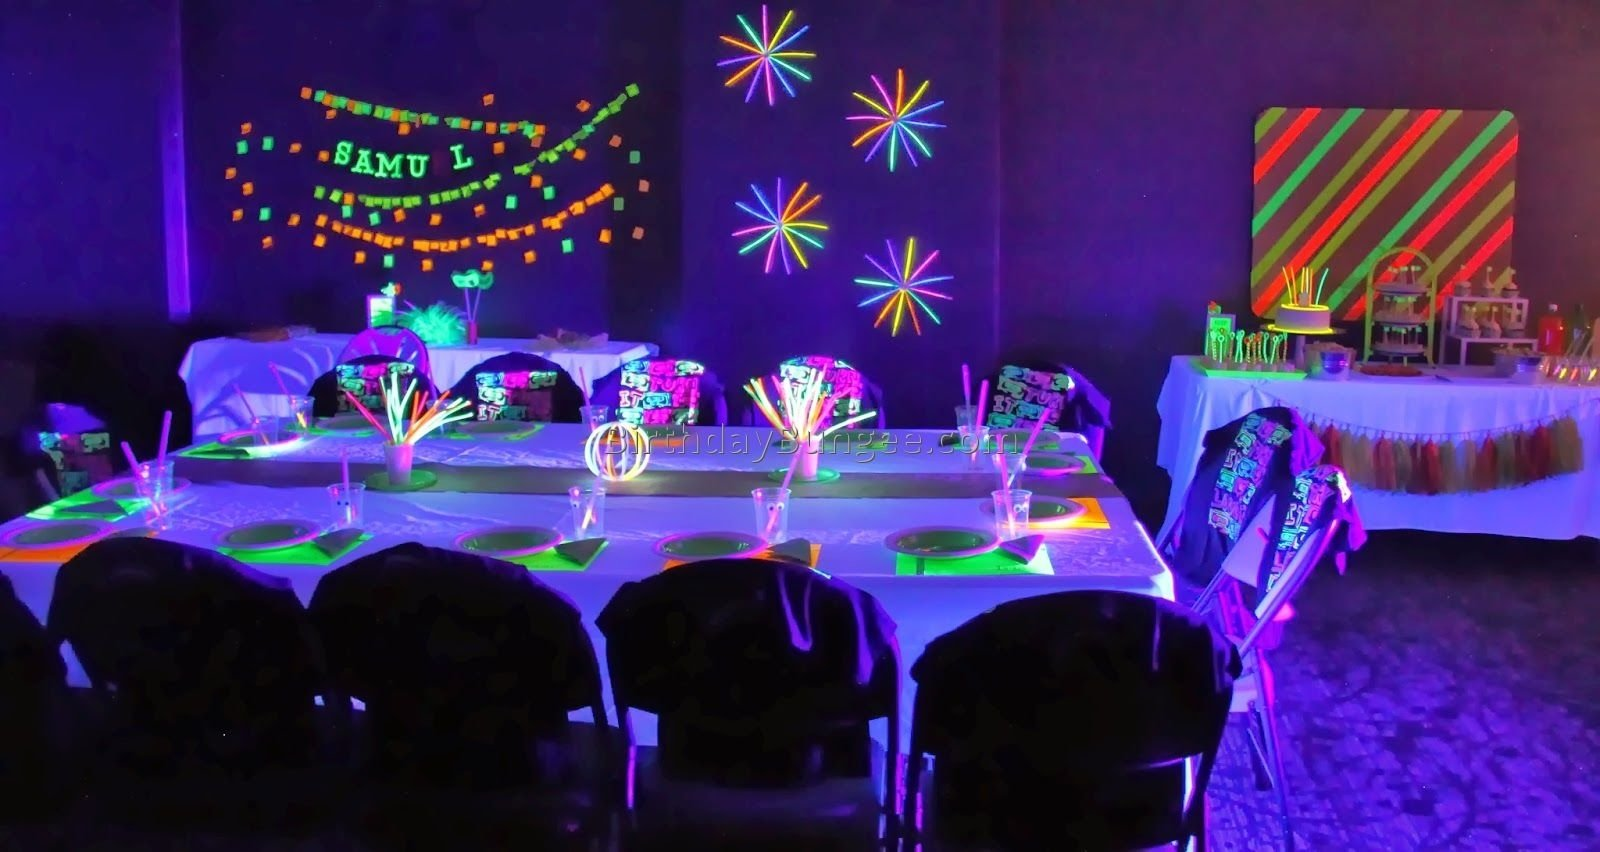 10 Nice 16 Year Old Birthday Party Ideas imagem relacionada 15 anos ideias pinterest searching